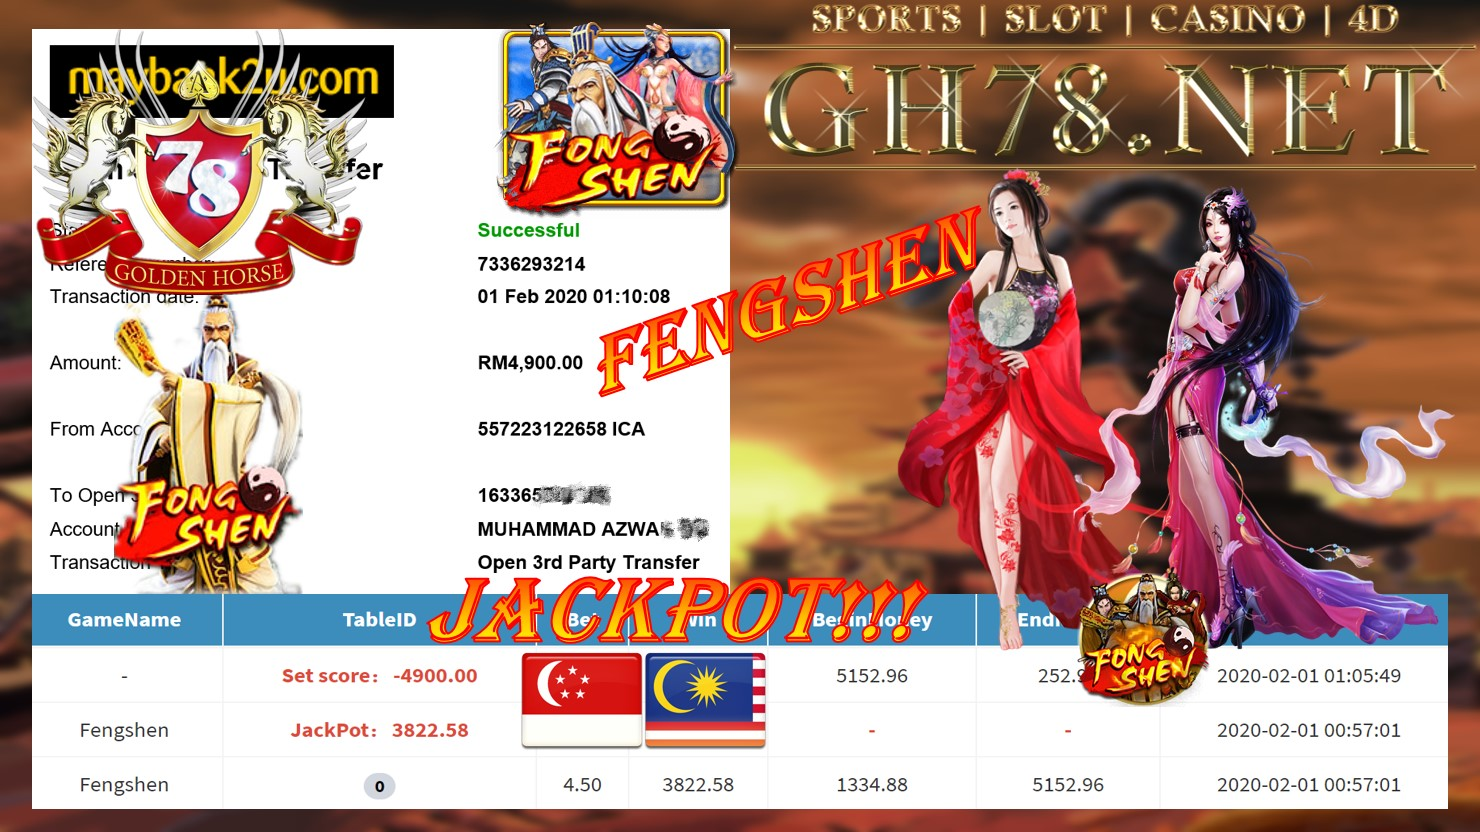 2020 NEW YEAR !!! MEMBER MAIN PUSSY888 , FENGSHEN , WITHDRAW RM4900 !!!